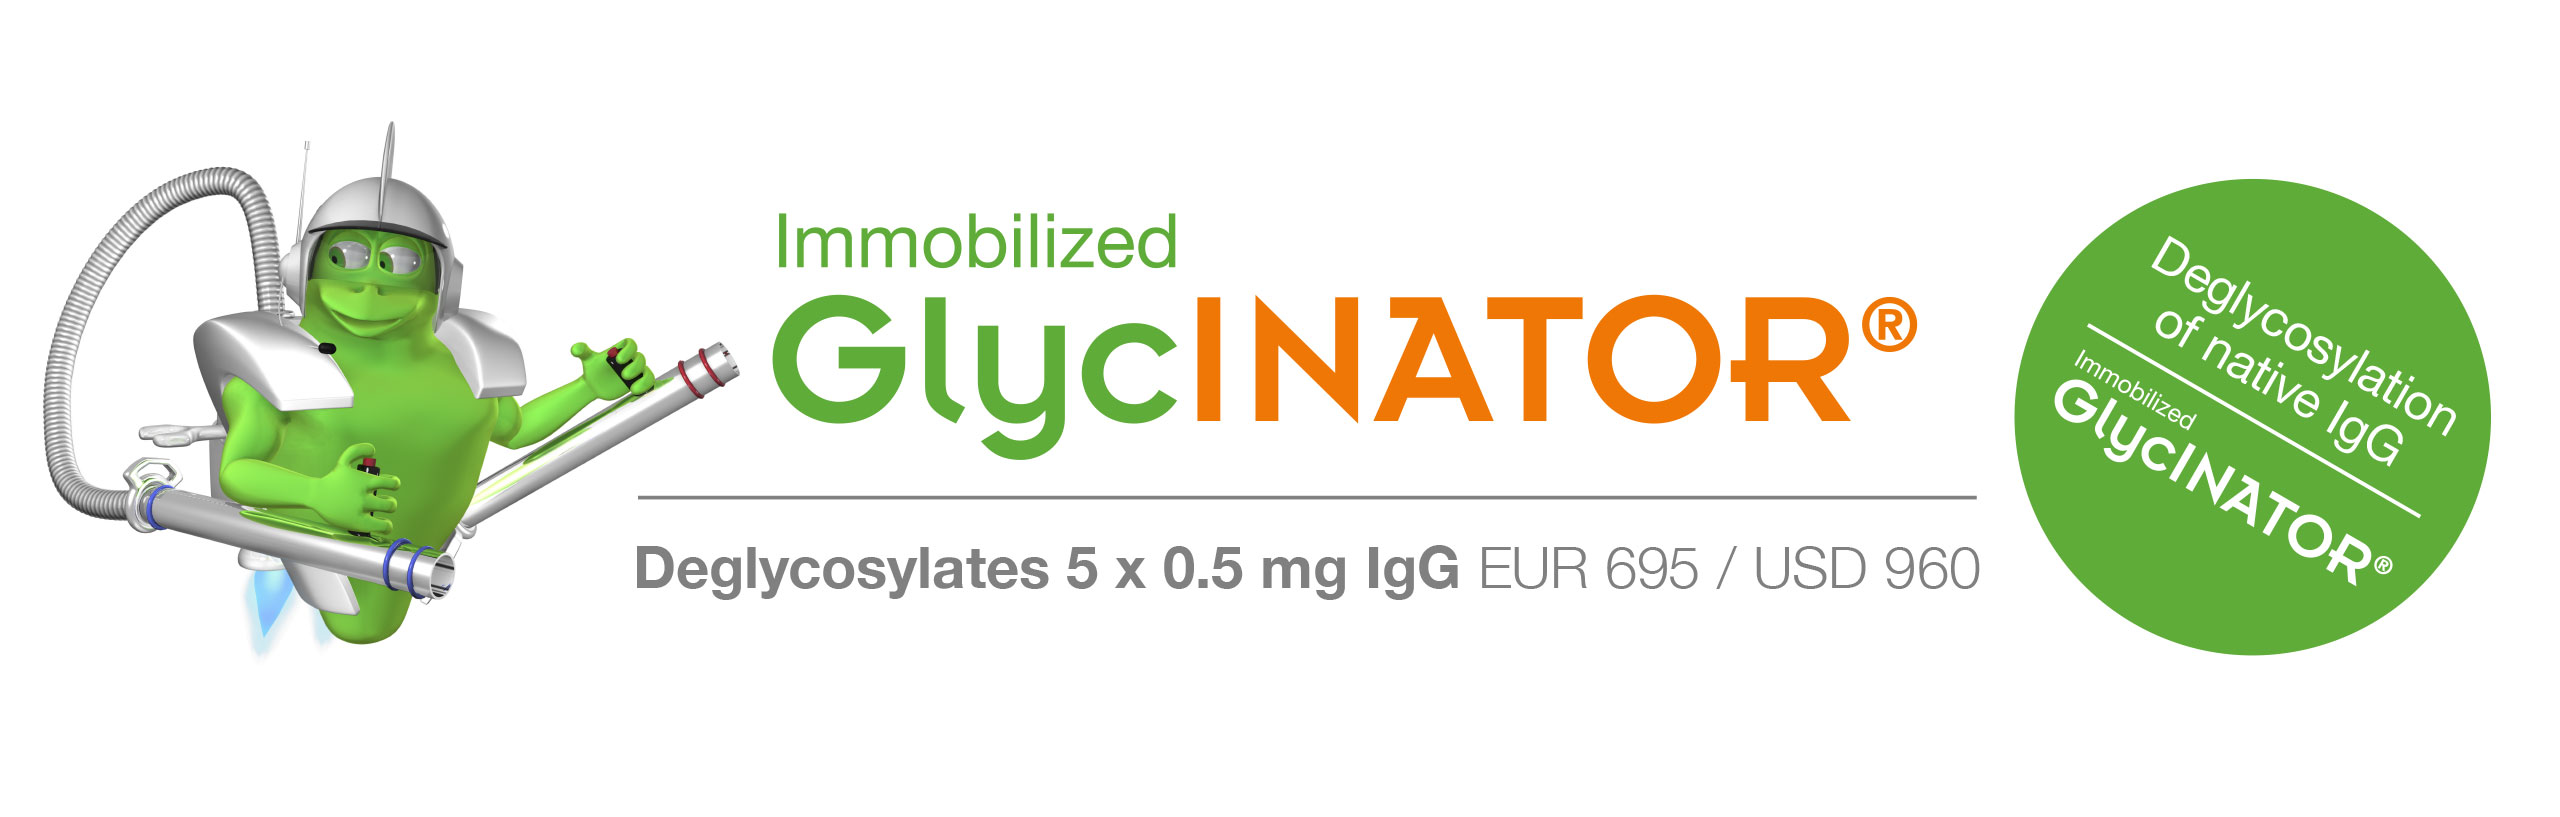 Immobilized_GlycINATOR_Banner_2560x817px